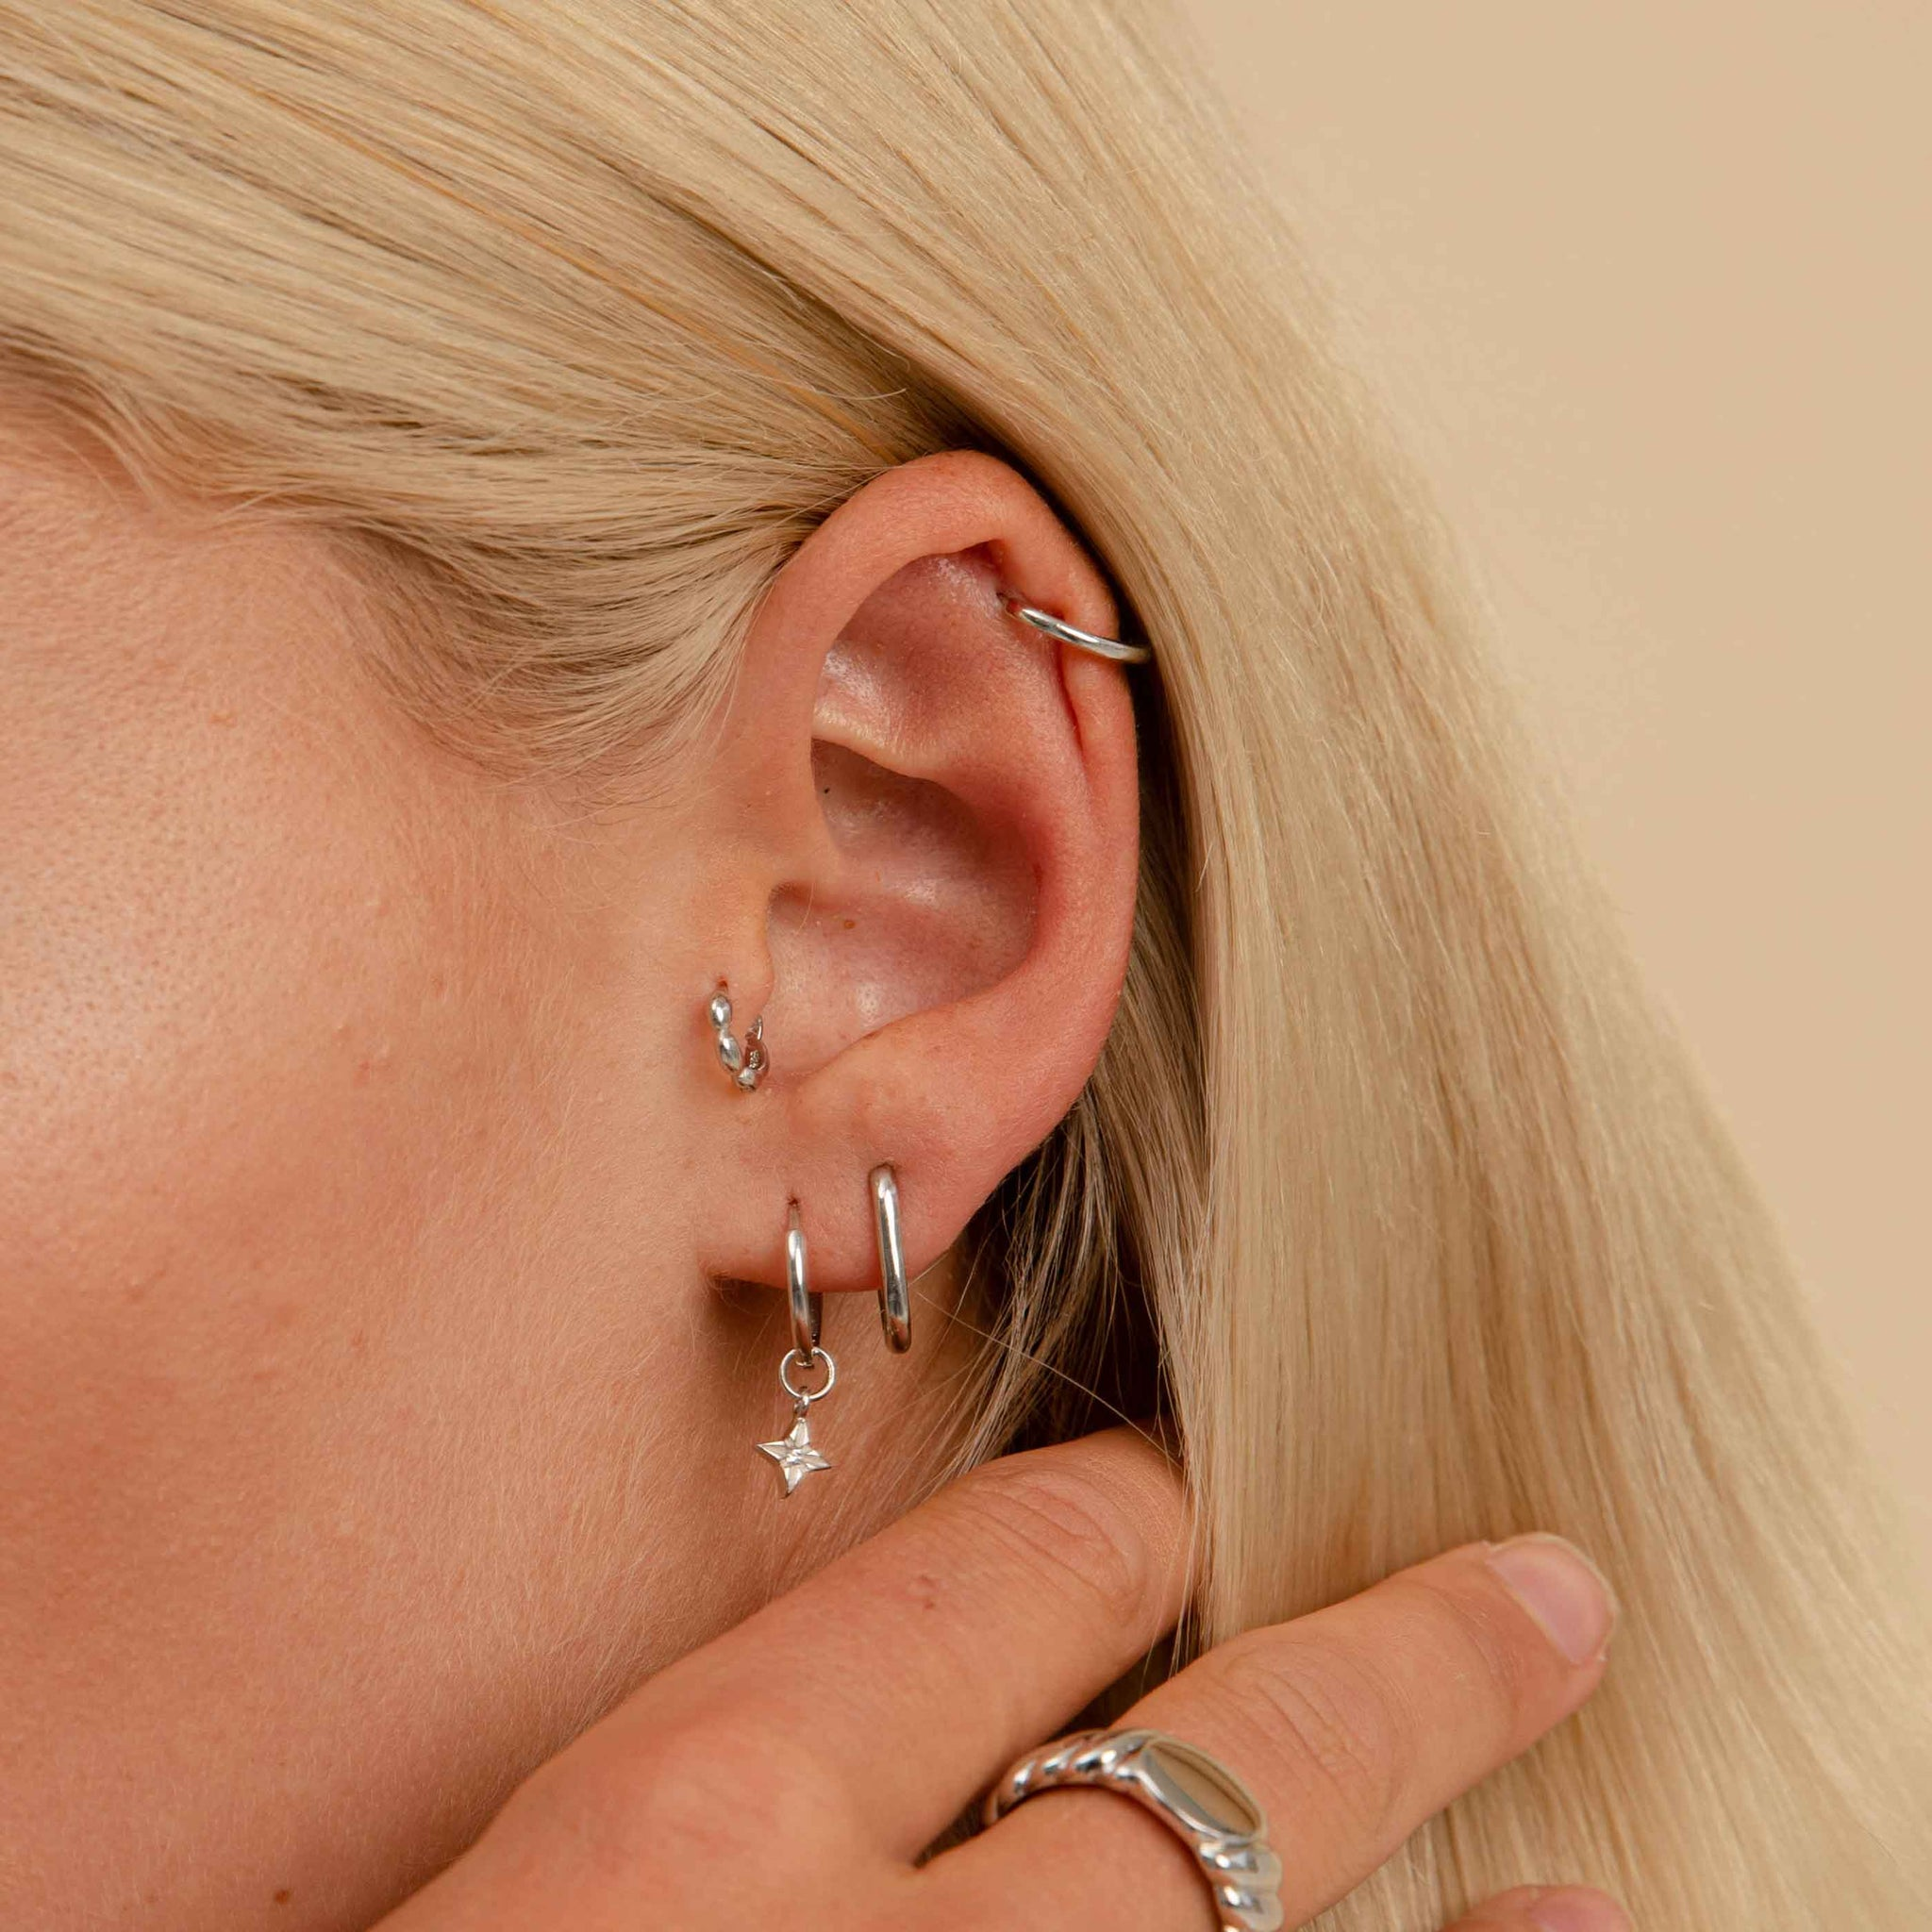 Bubble Clicker in Silver in tragus piercing